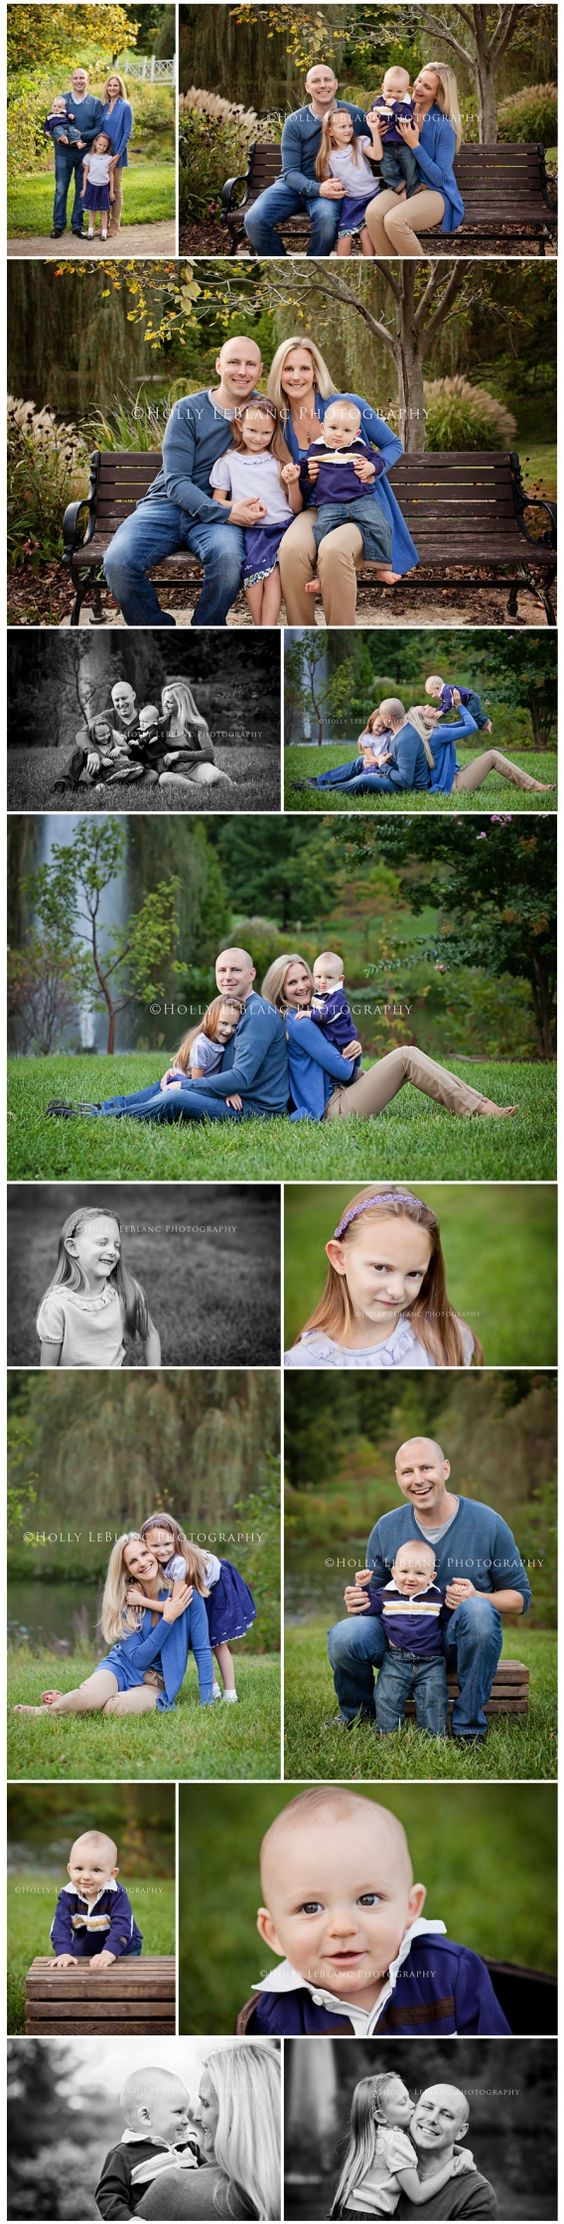 Outdoor Family Portraits | NJ Child and Baby Photographer - Holly LeBlanc Photography